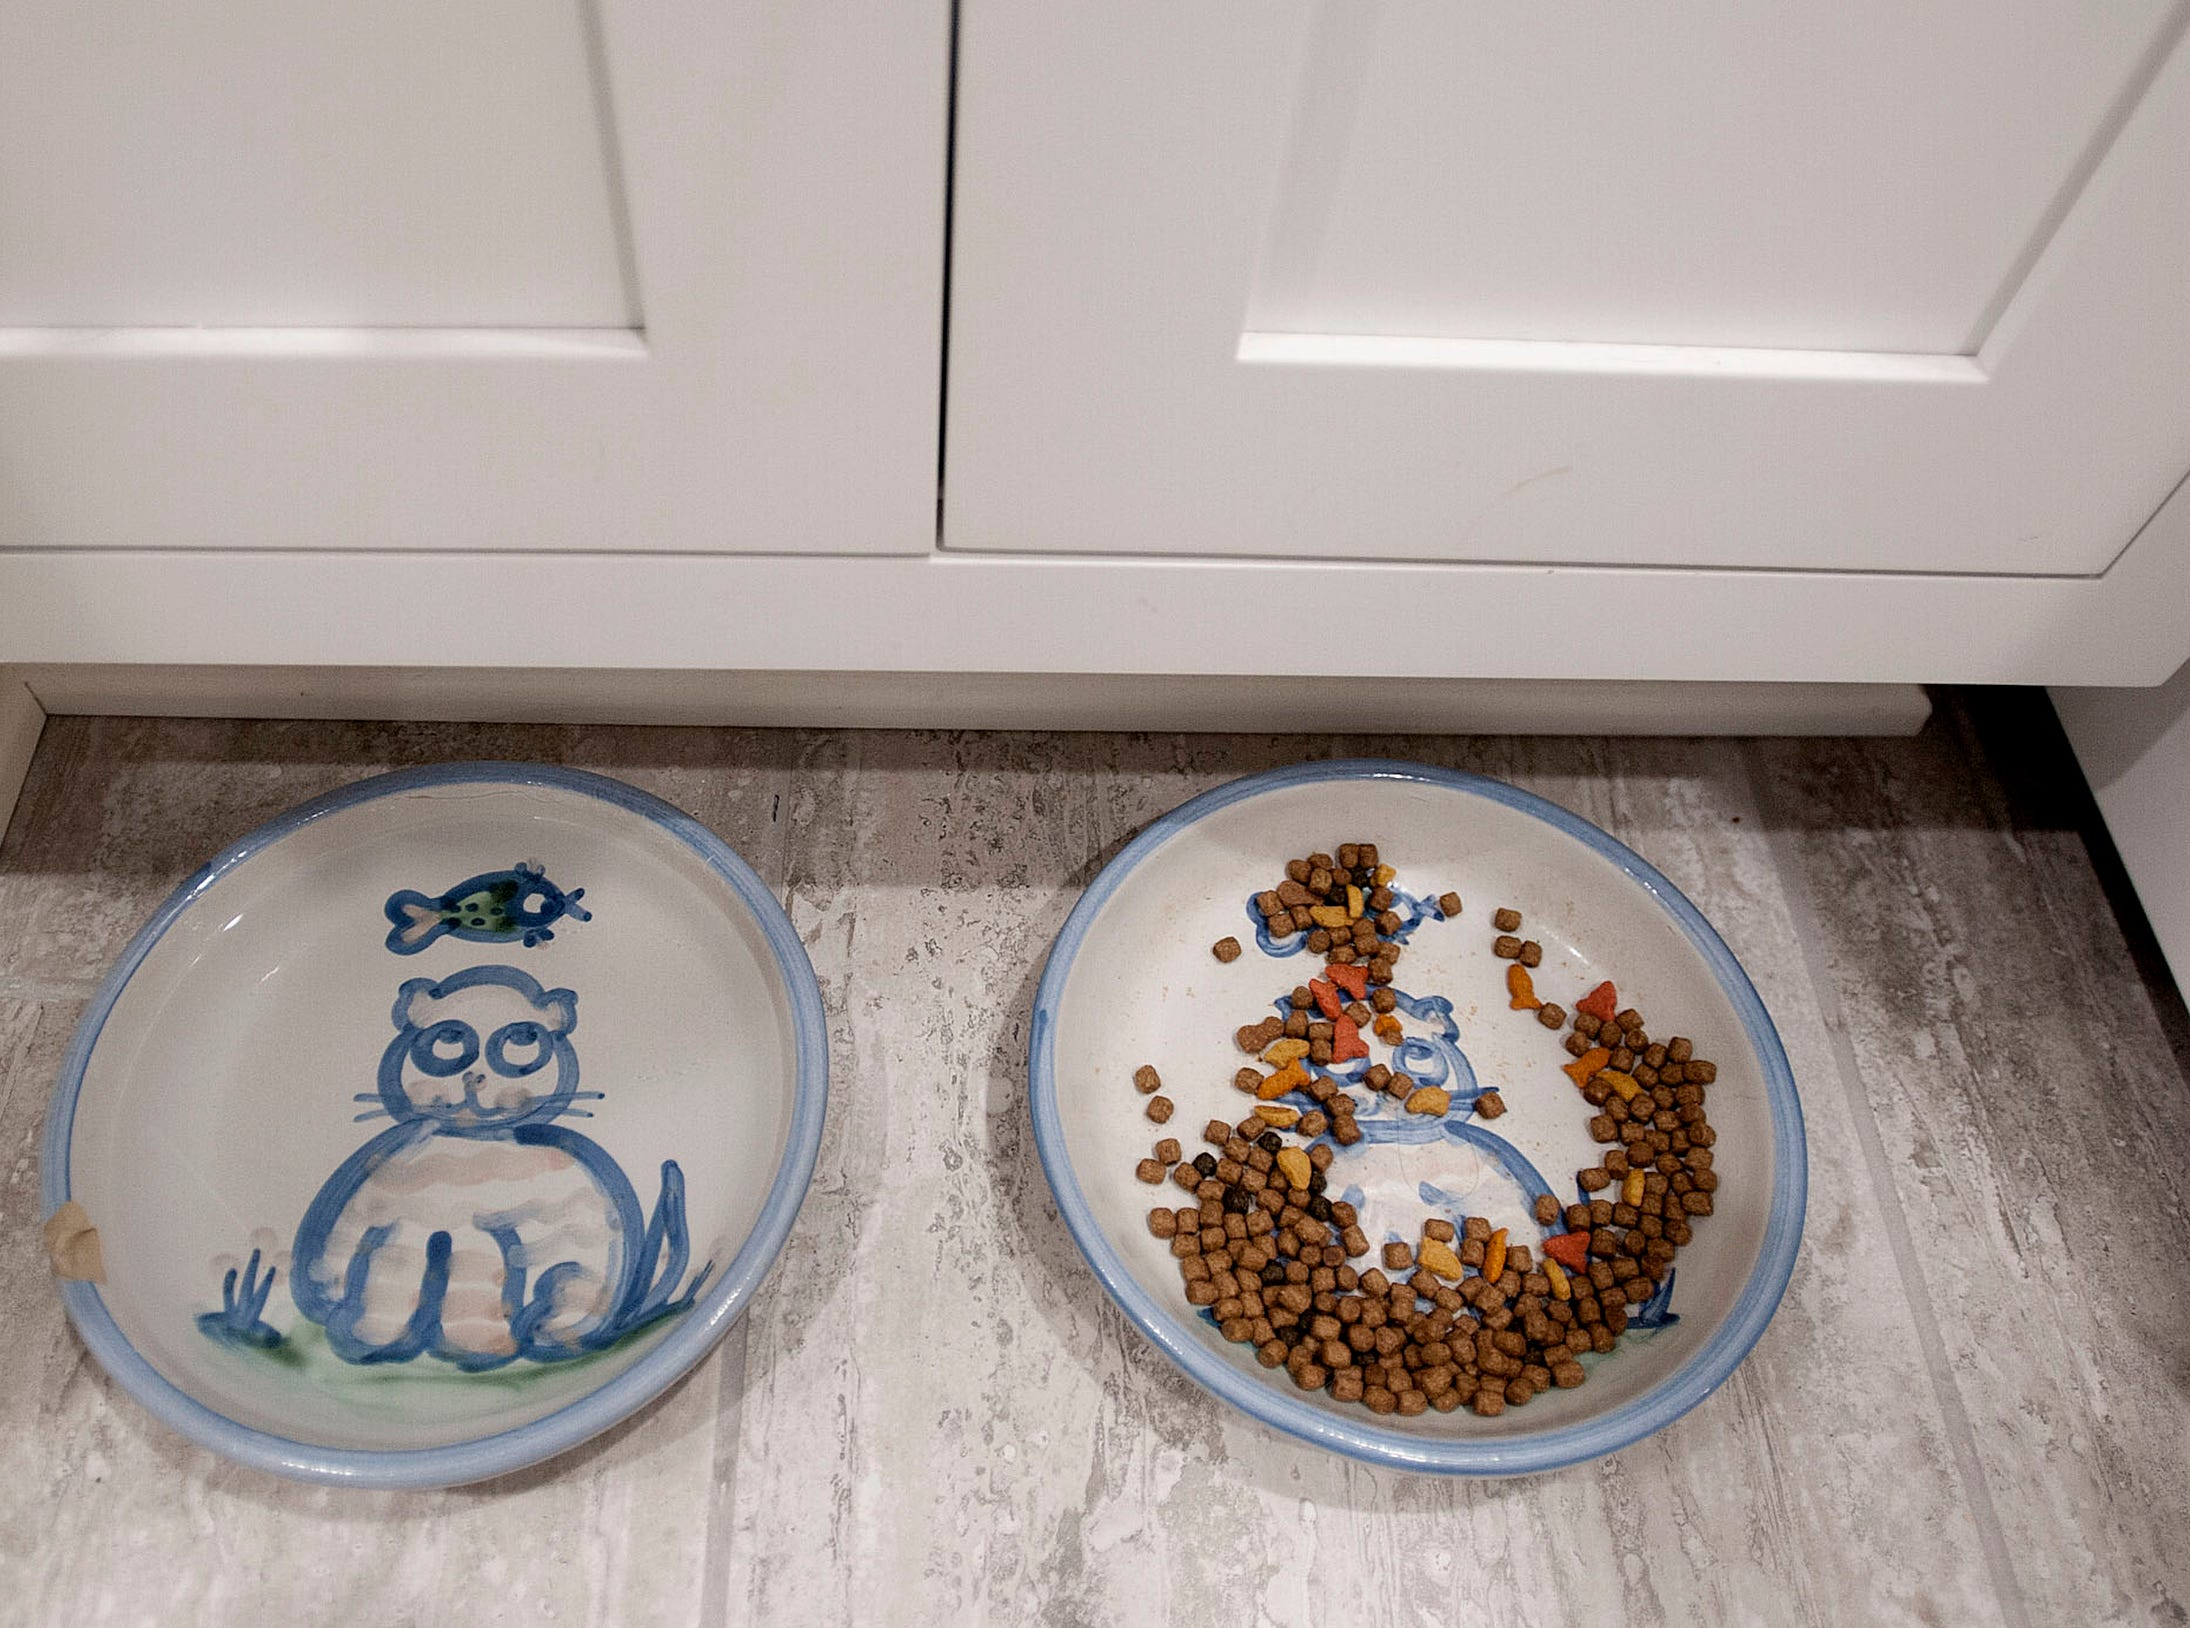 Olive's water and kibble bowl are located at the bottom of the laundry room sink. The bowls were made by M.A. Hadley, in Louisville.